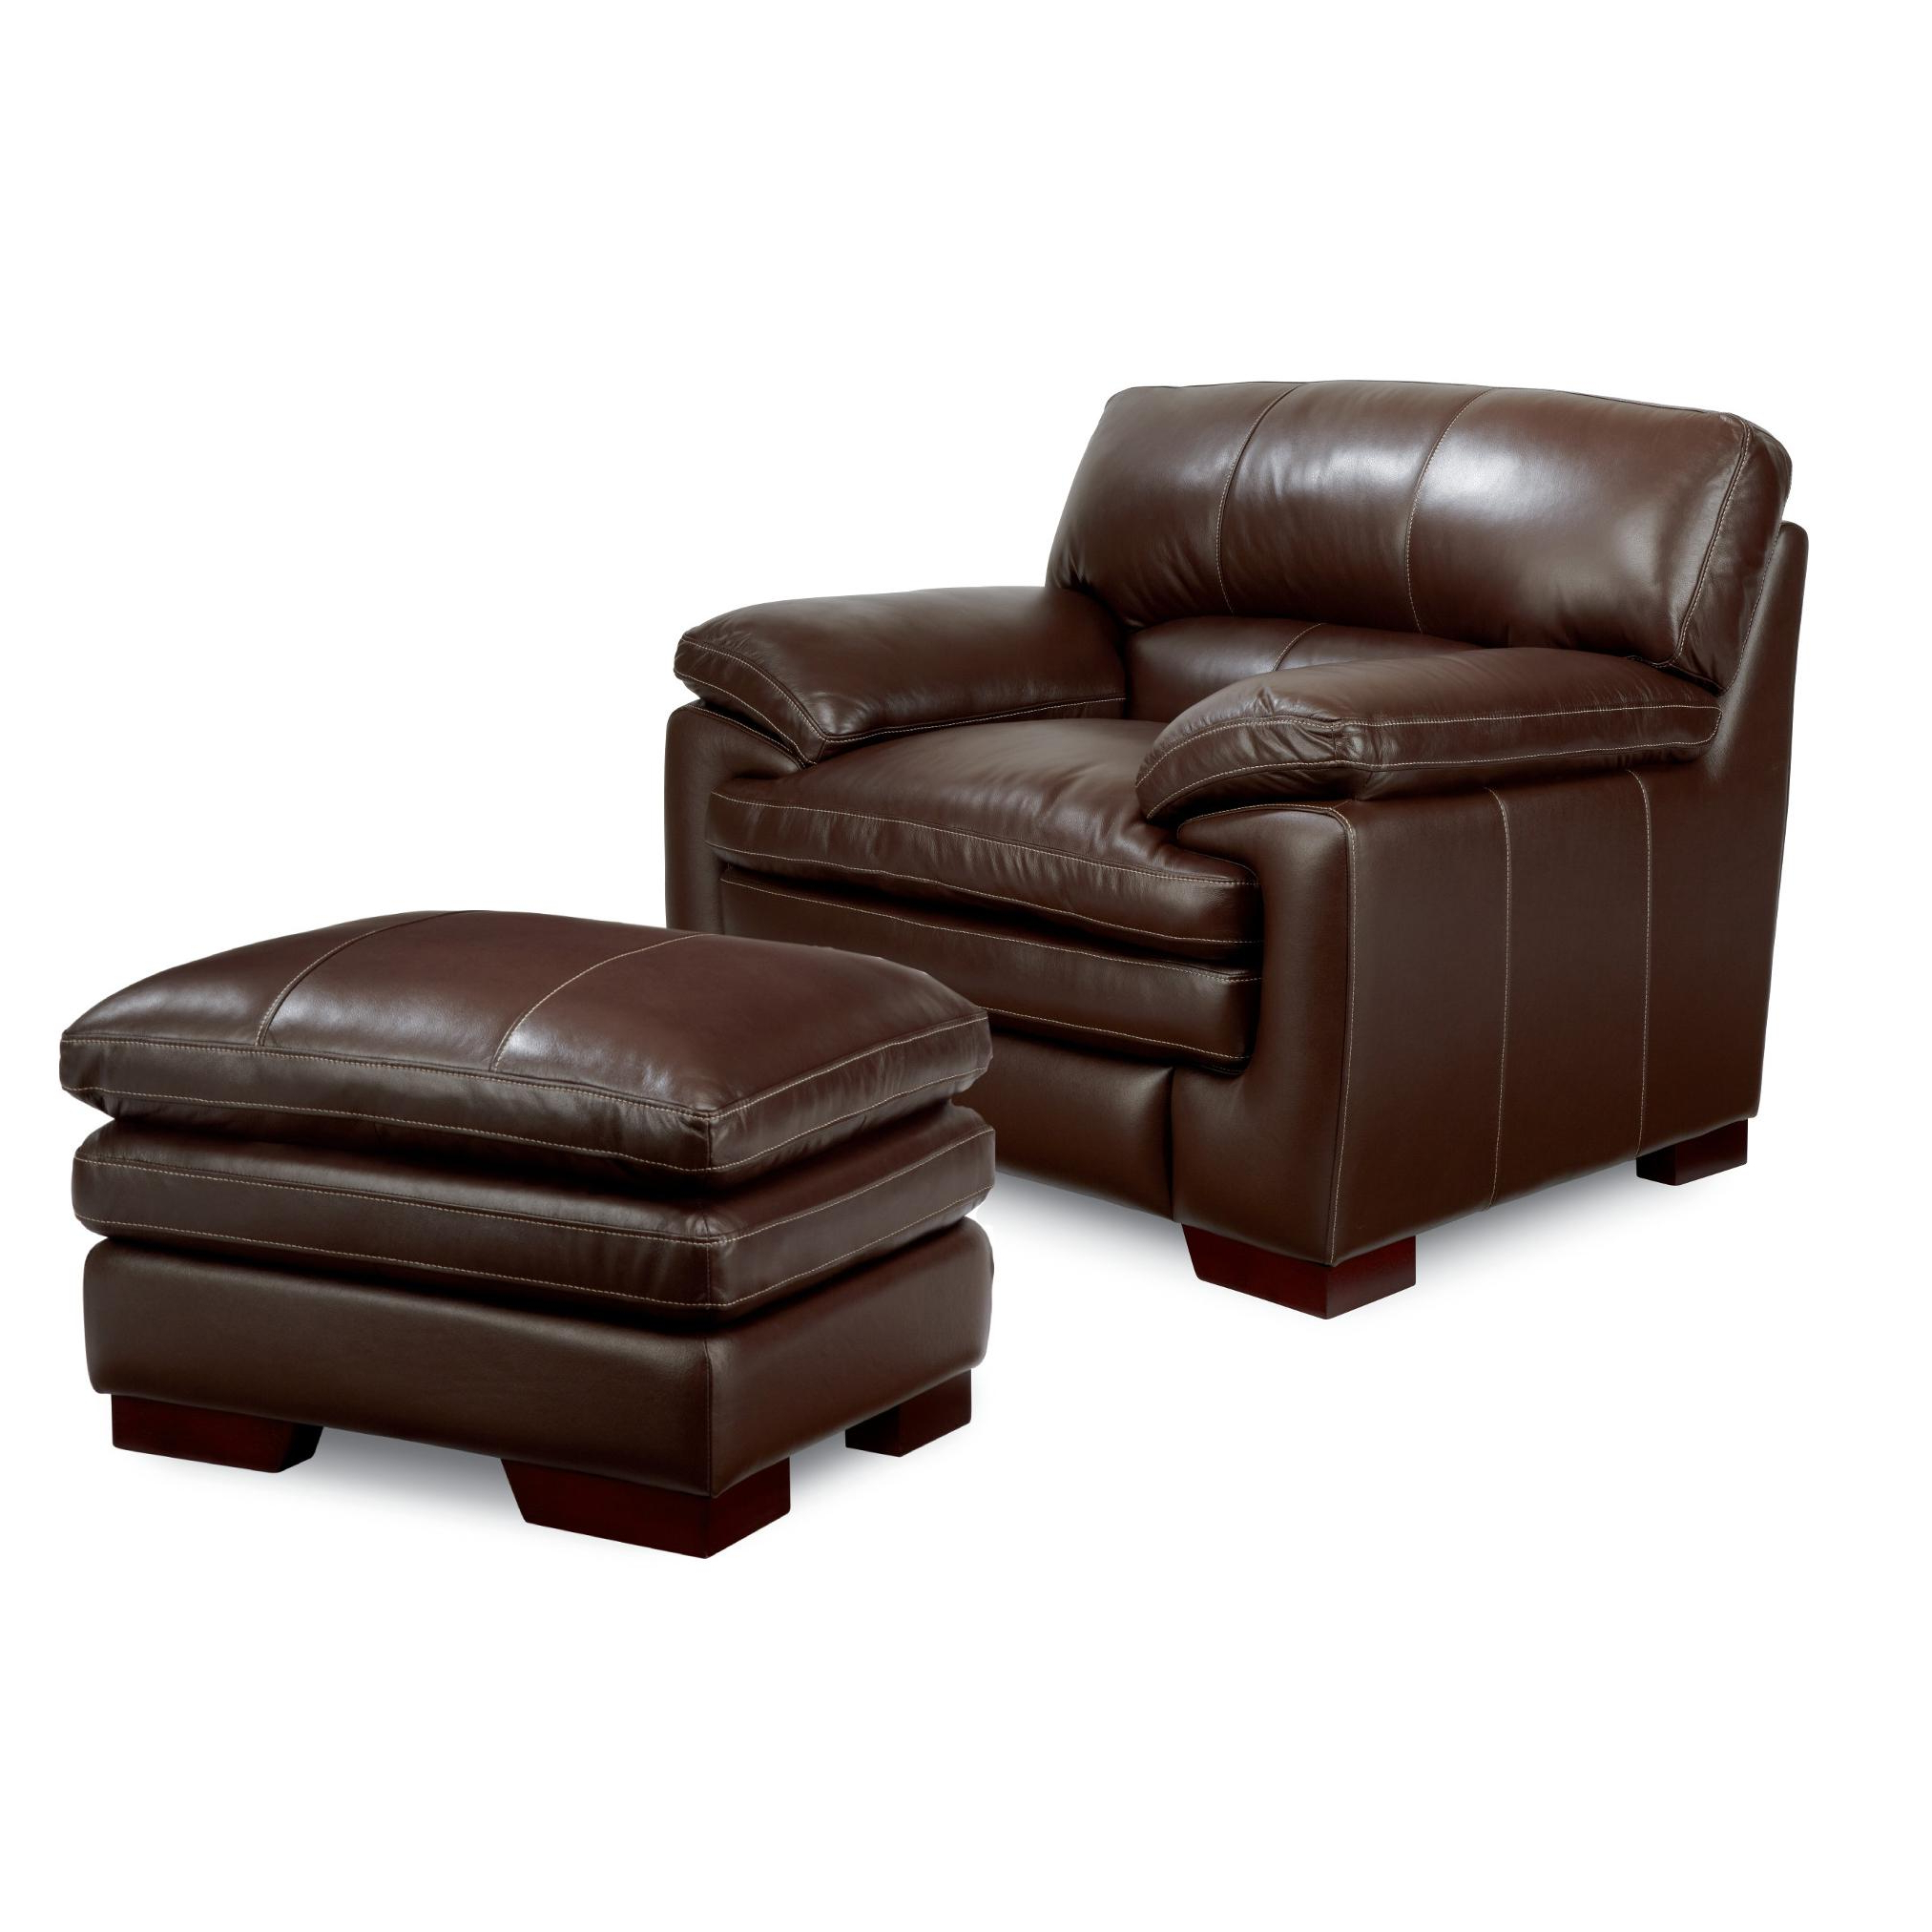 Sofa Chair With Ottoman Pertaining To 2018 Casual Upholstered Stationary Chair And Ottoman Setla Z Boy (View 13 of 20)